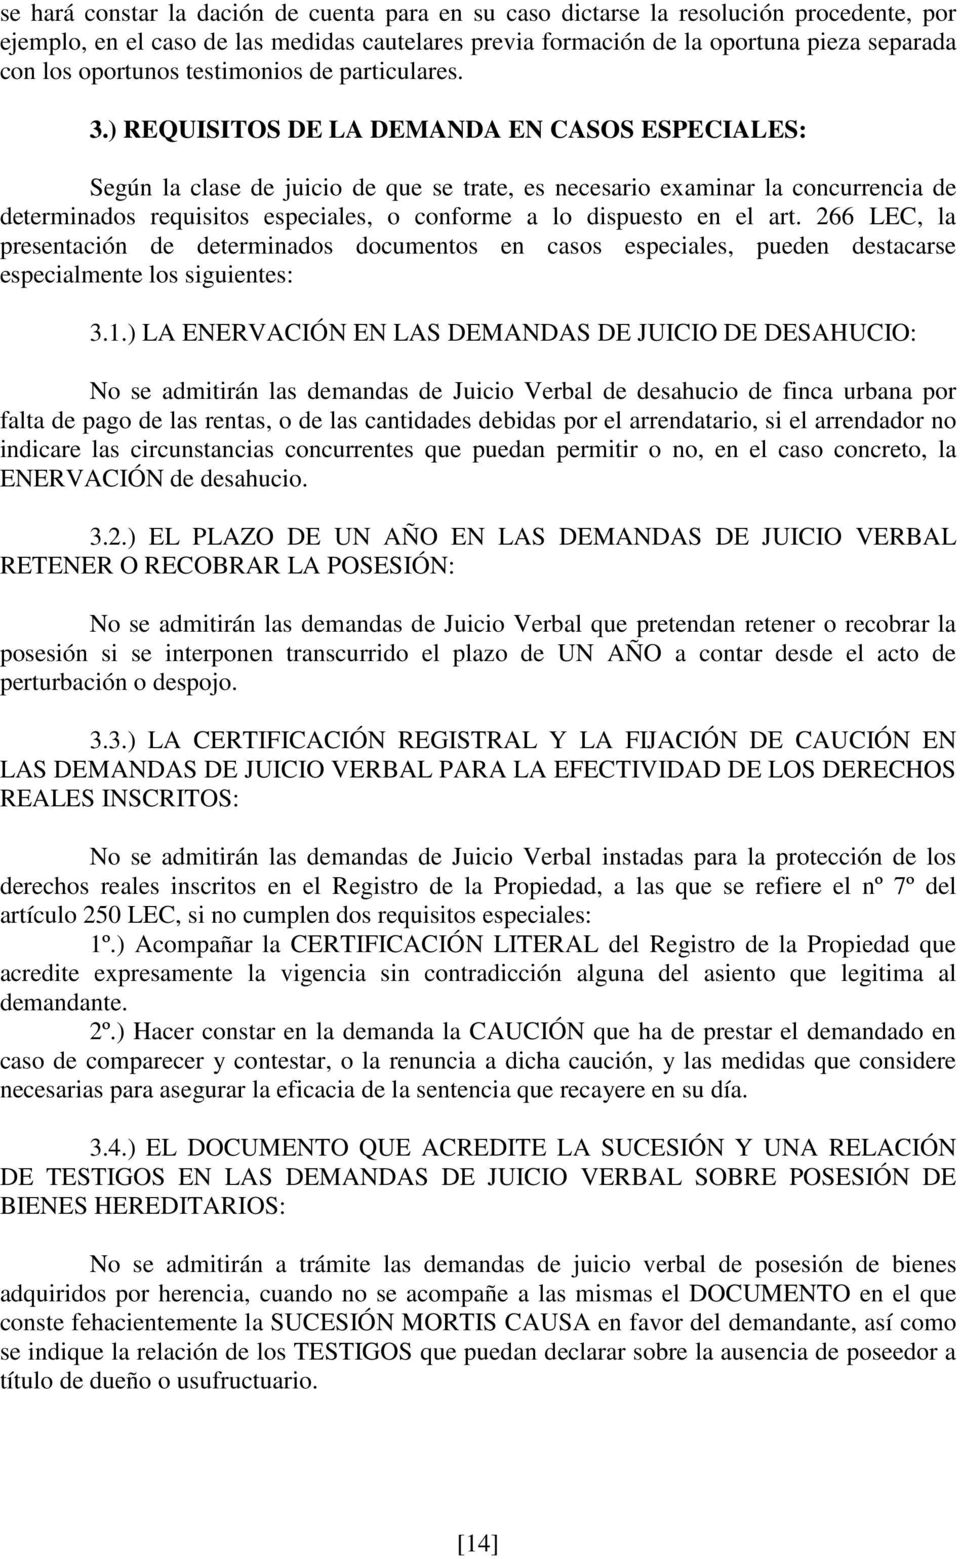 ) REQUISITOS DE LA DEMANDA EN CASOS ESPECIALES: Según la clase de juicio de que se trate, es necesario examinar la concurrencia de determinados requisitos especiales, o conforme a lo dispuesto en el